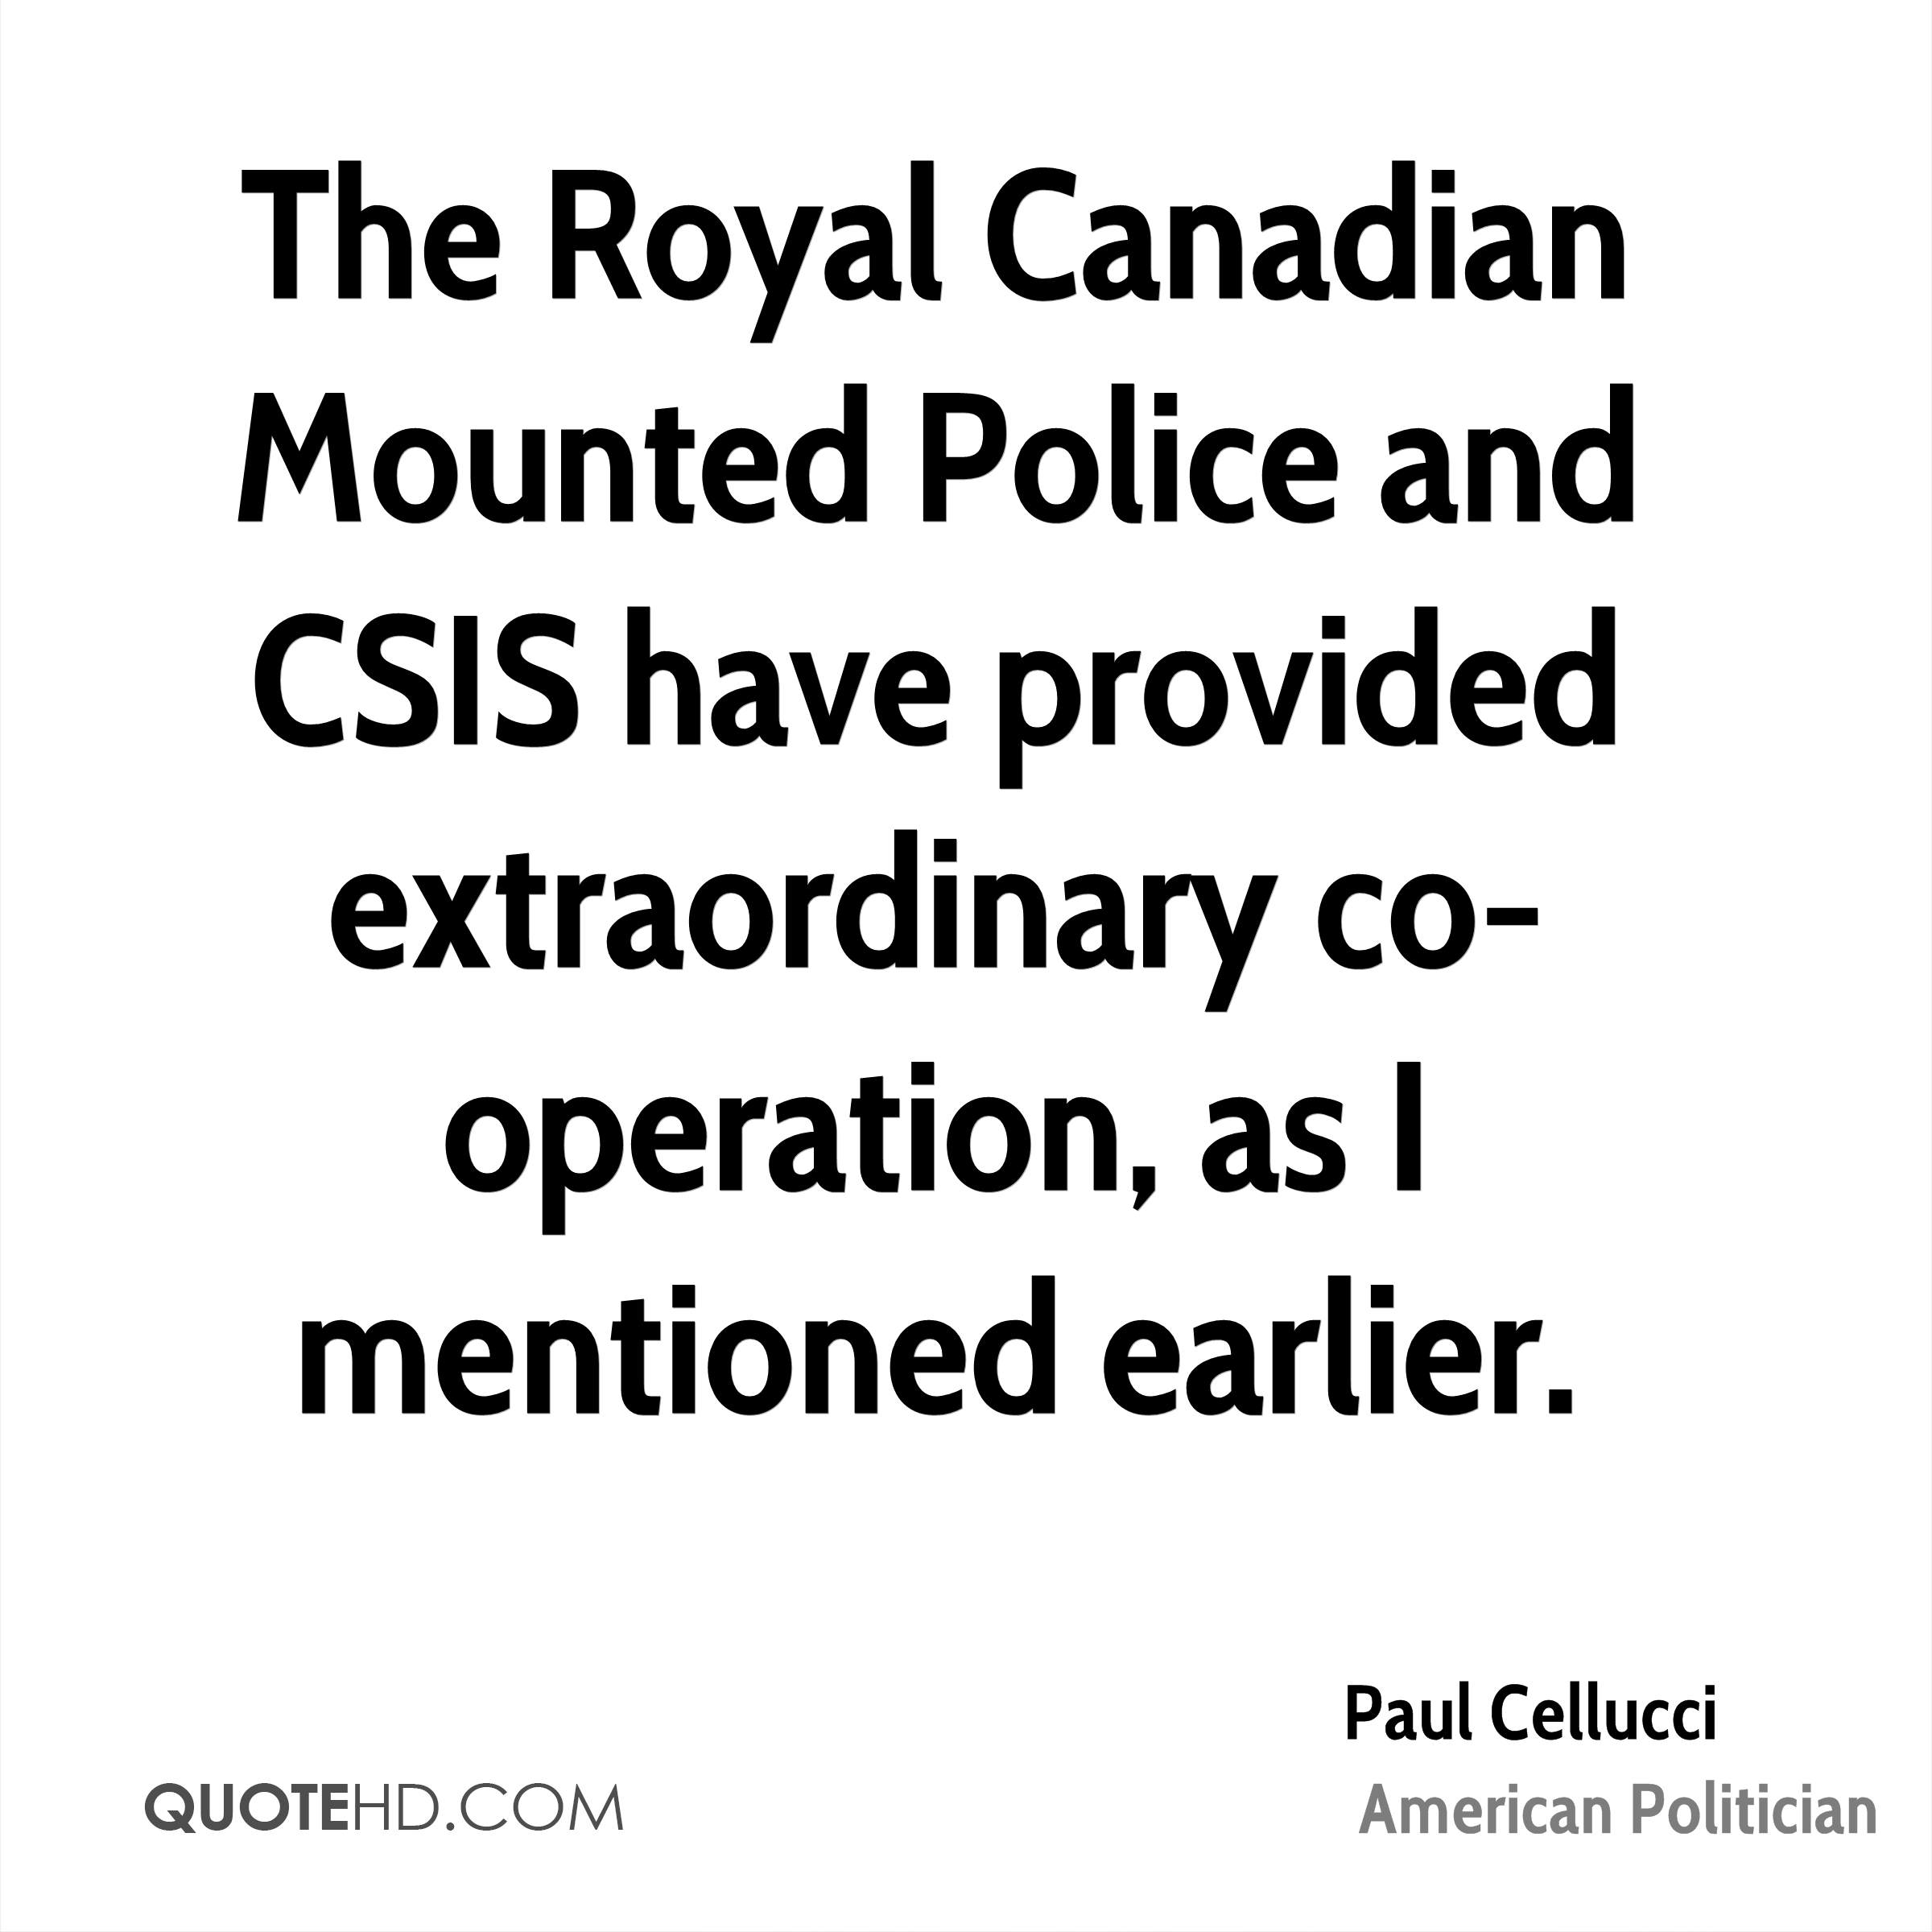 The Royal Canadian Mounted Police and CSIS have provided extraordinary co-operation, as I mentioned earlier.